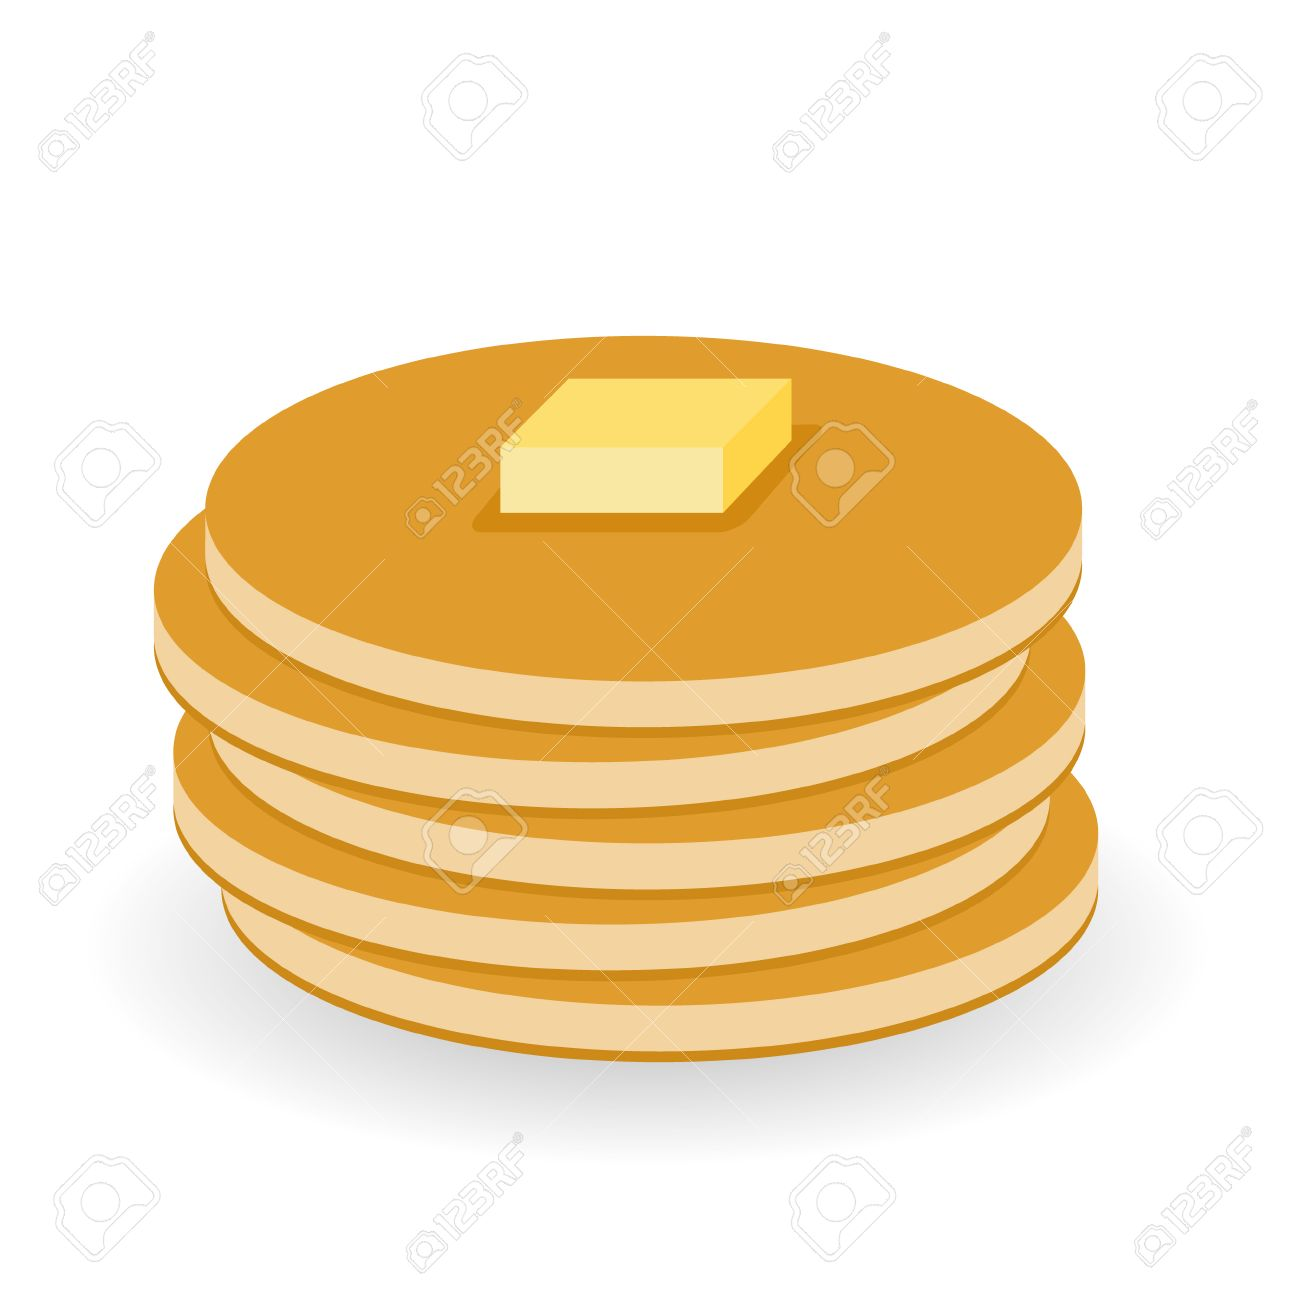 pancakes with butter - 27347502